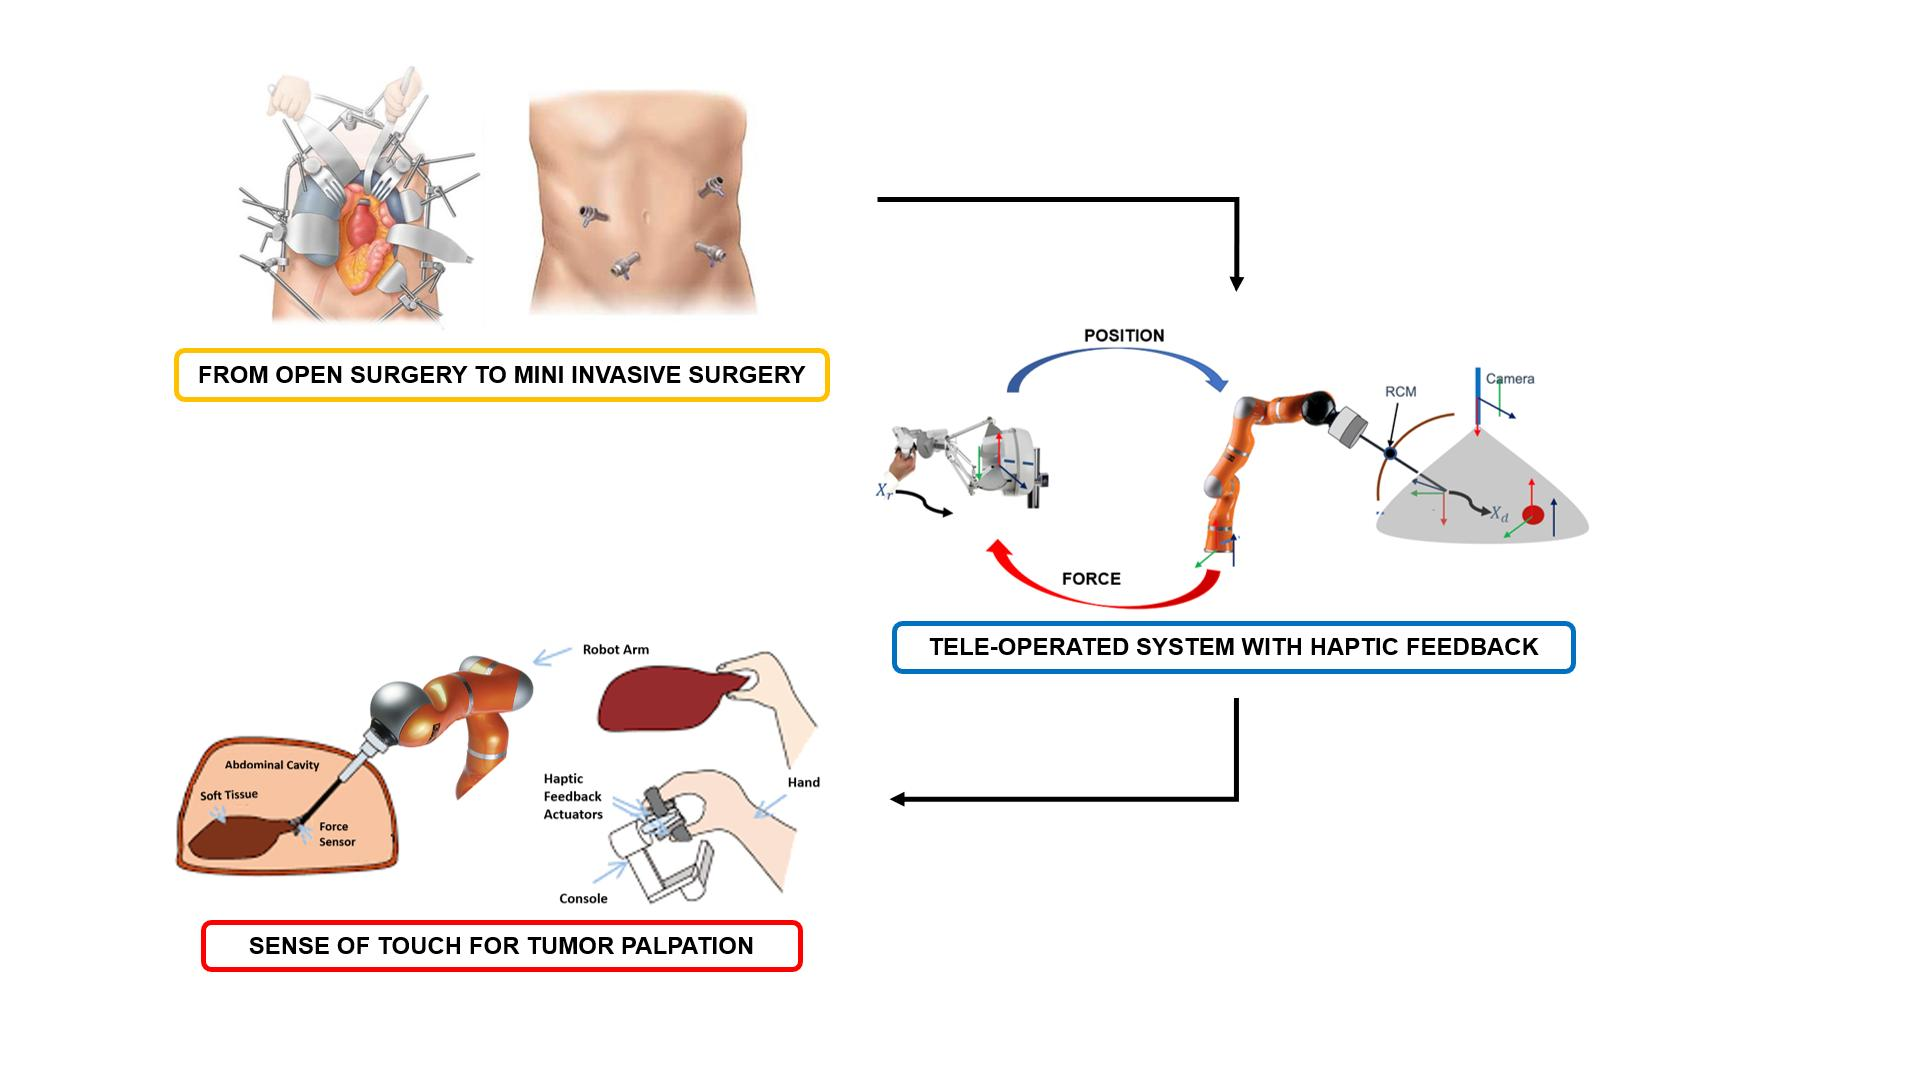 Restoring  tactile feedback in robotic surgery